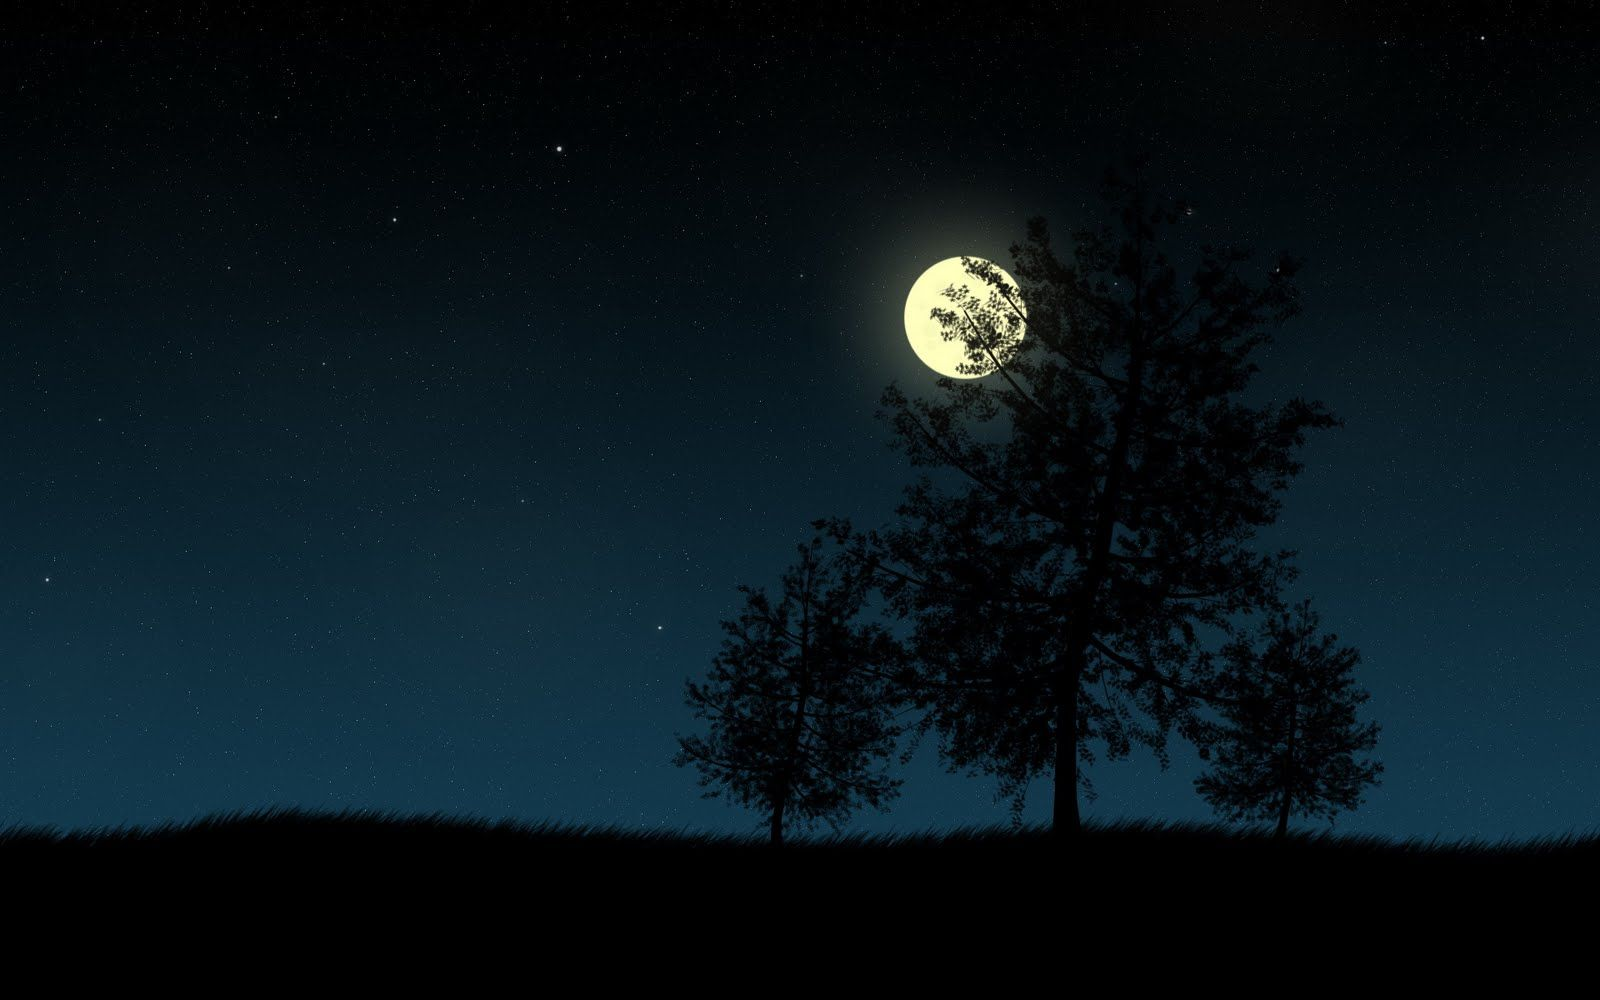 Dark Moon Wallpaper 1080p Hd Wallpaper Nature Wallpaper Beautiful Nature Dark Moon